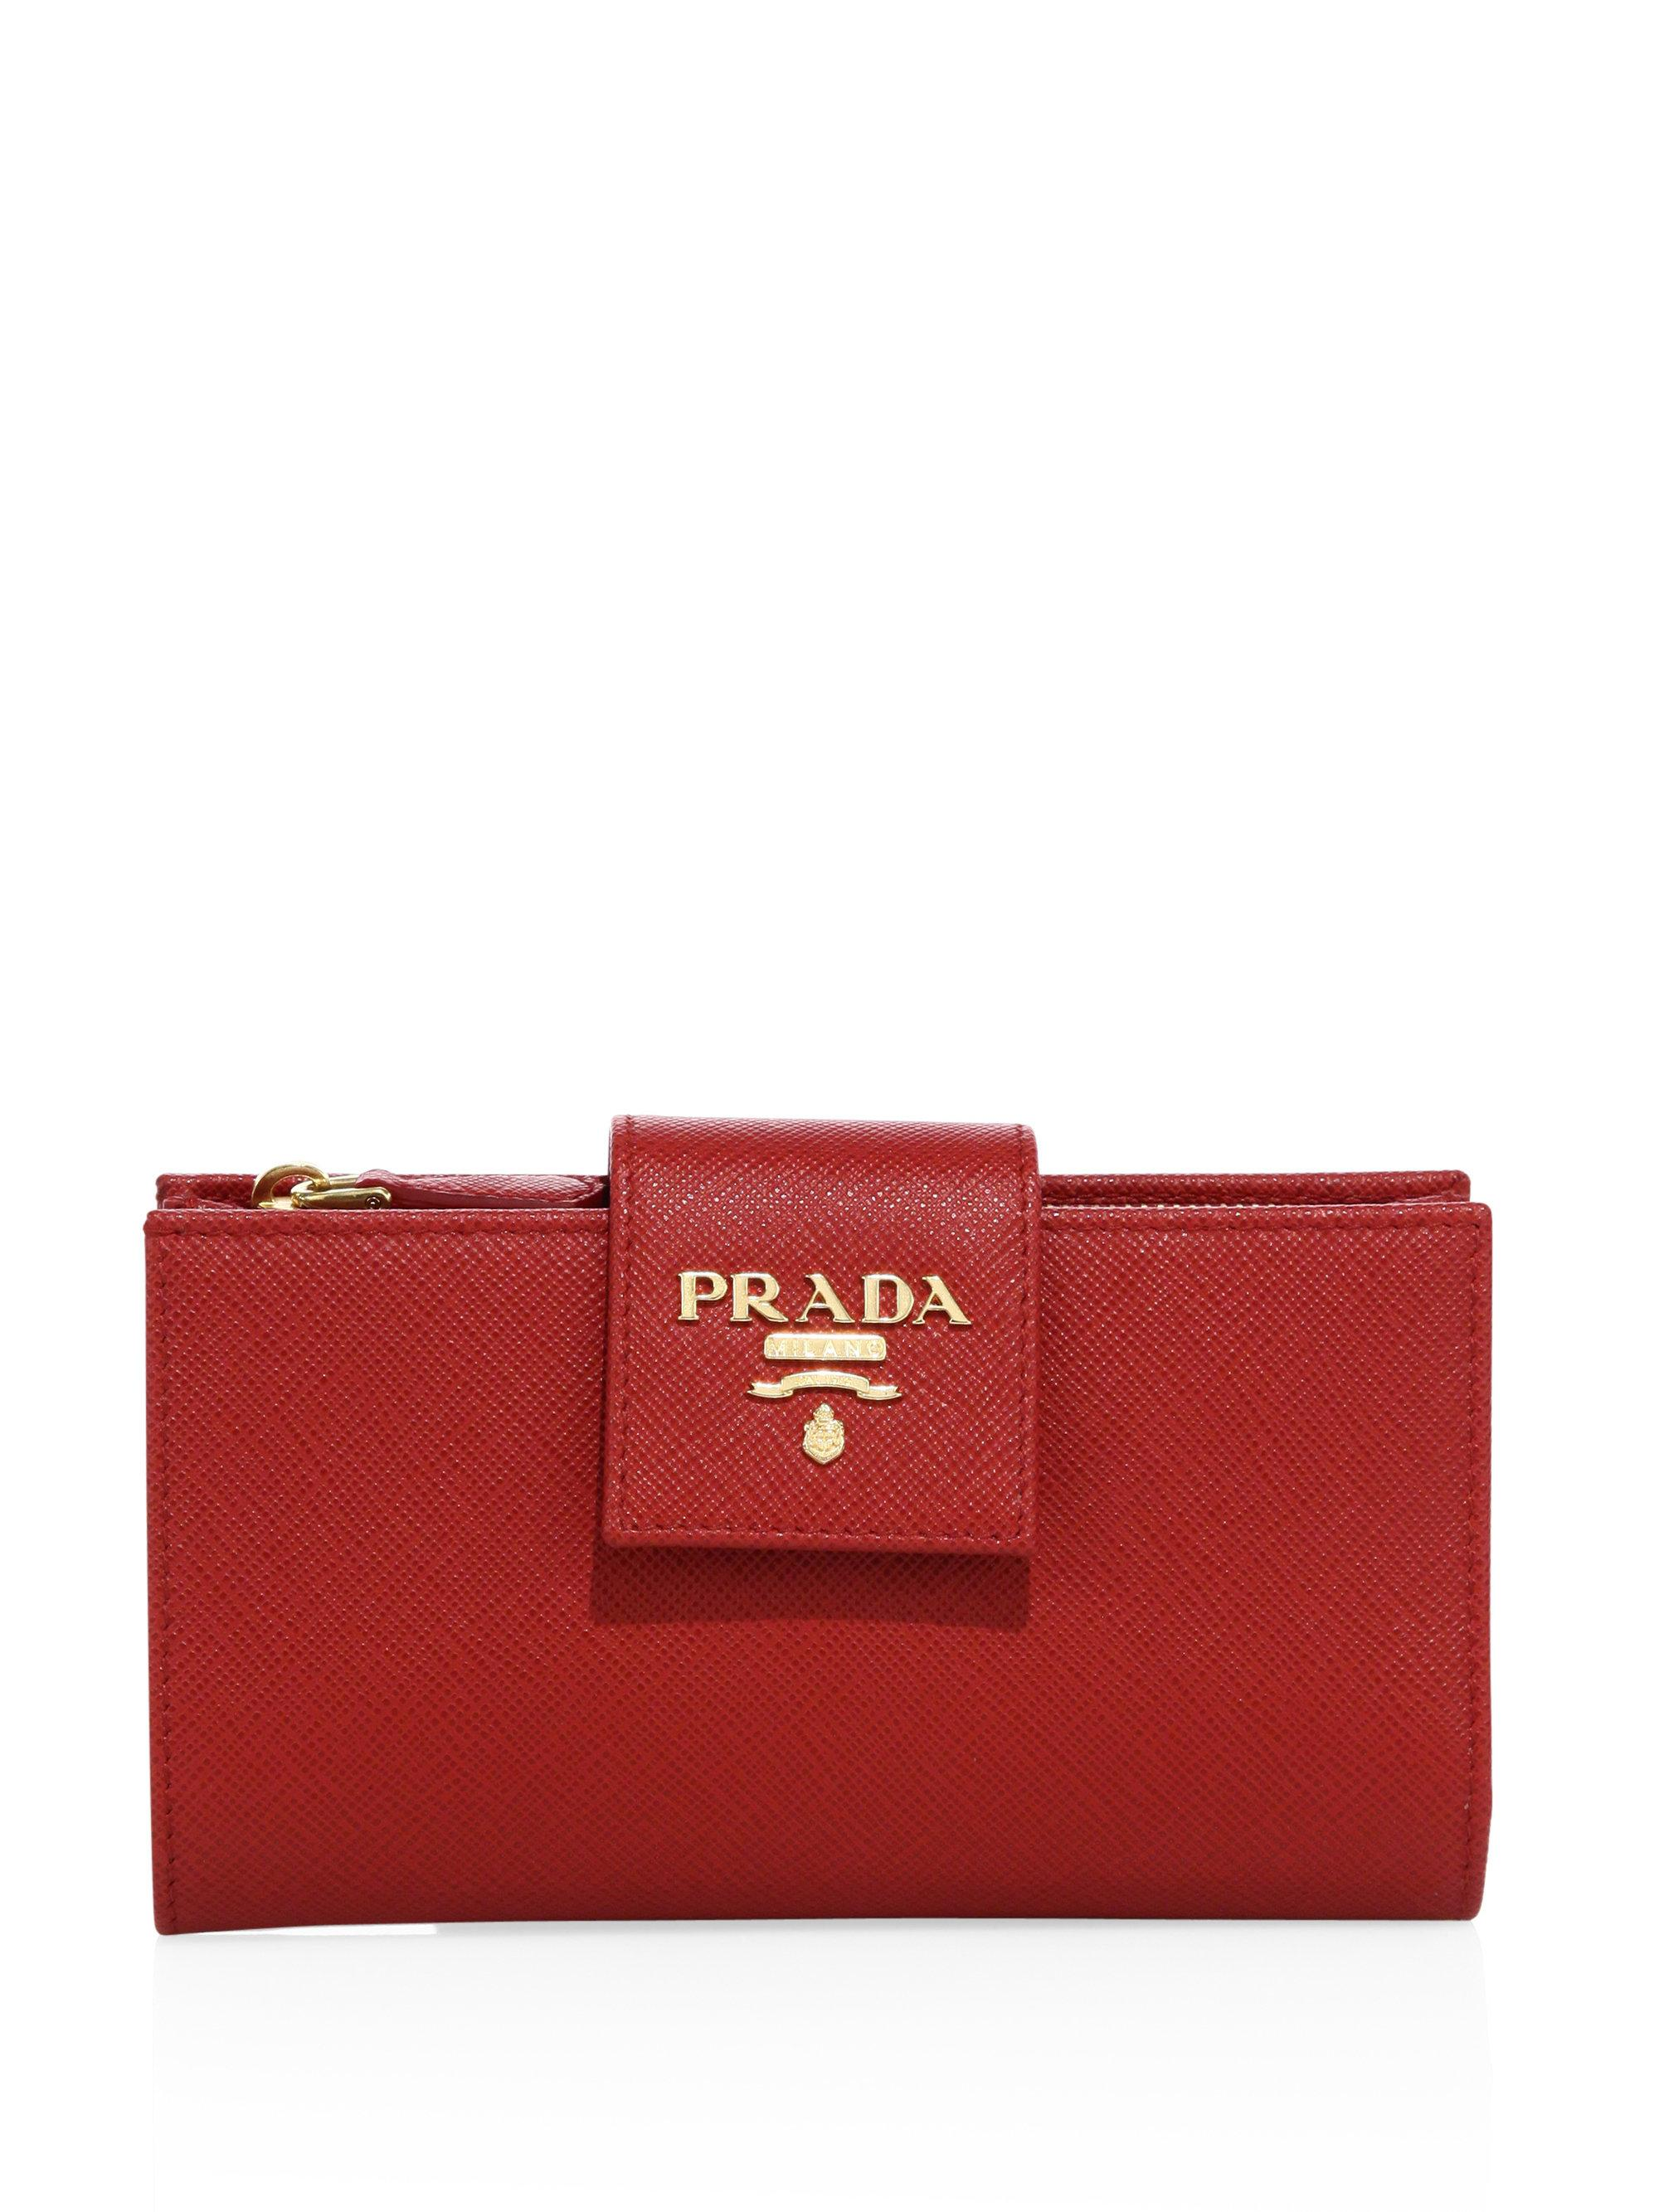 5681769a39d4 Lyst - Prada Saffiano Leather Tab Wallet in Red